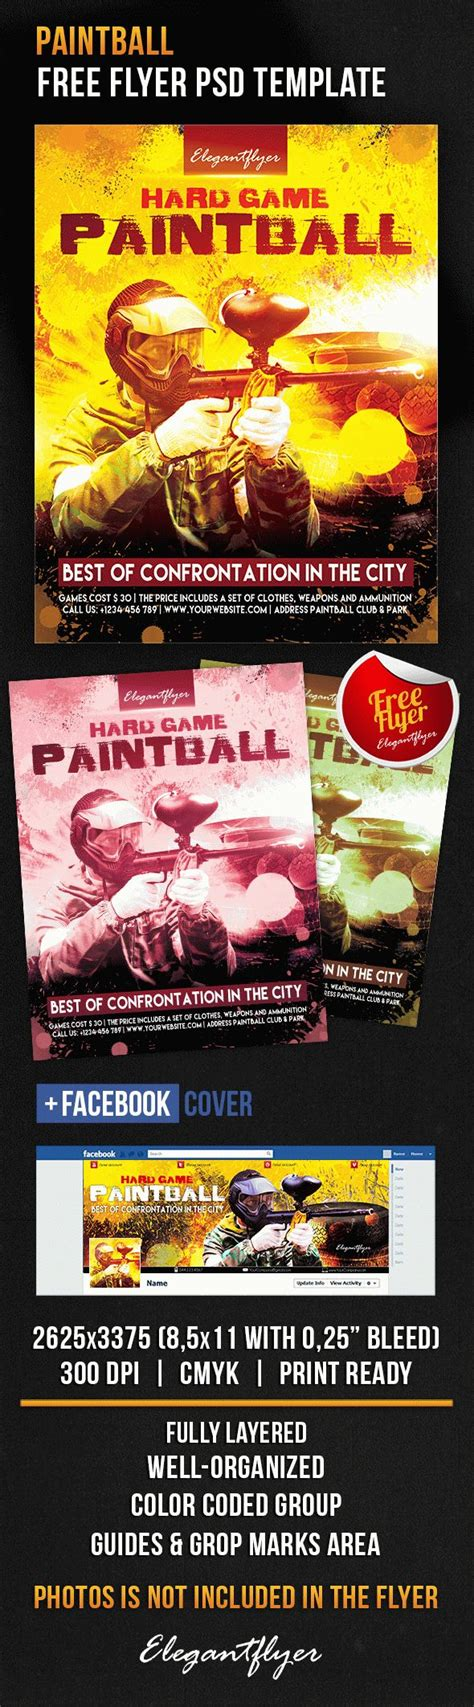 Paintball Free Flyer Psd Template By Elegantflyer Free Caign Flyer Template